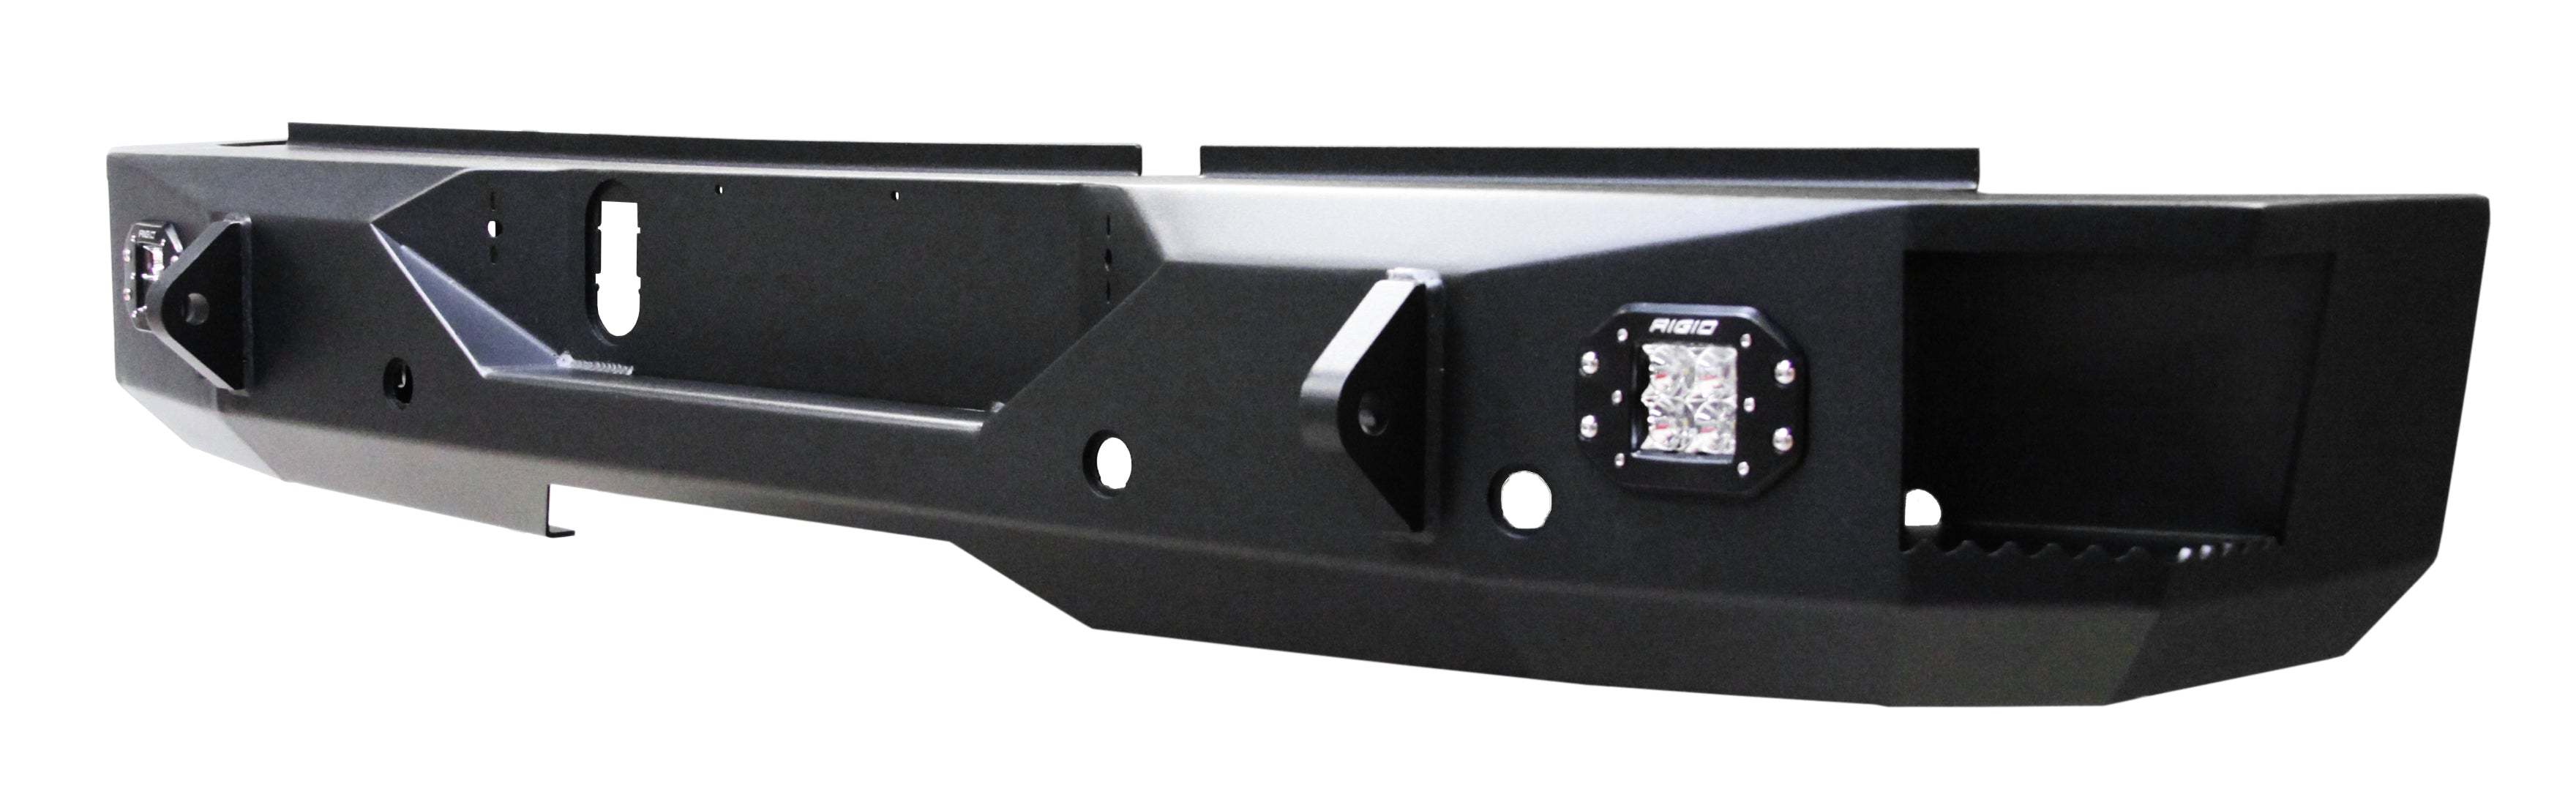 Backwoods GMC 1500 (2007-2013) Rear Bumper